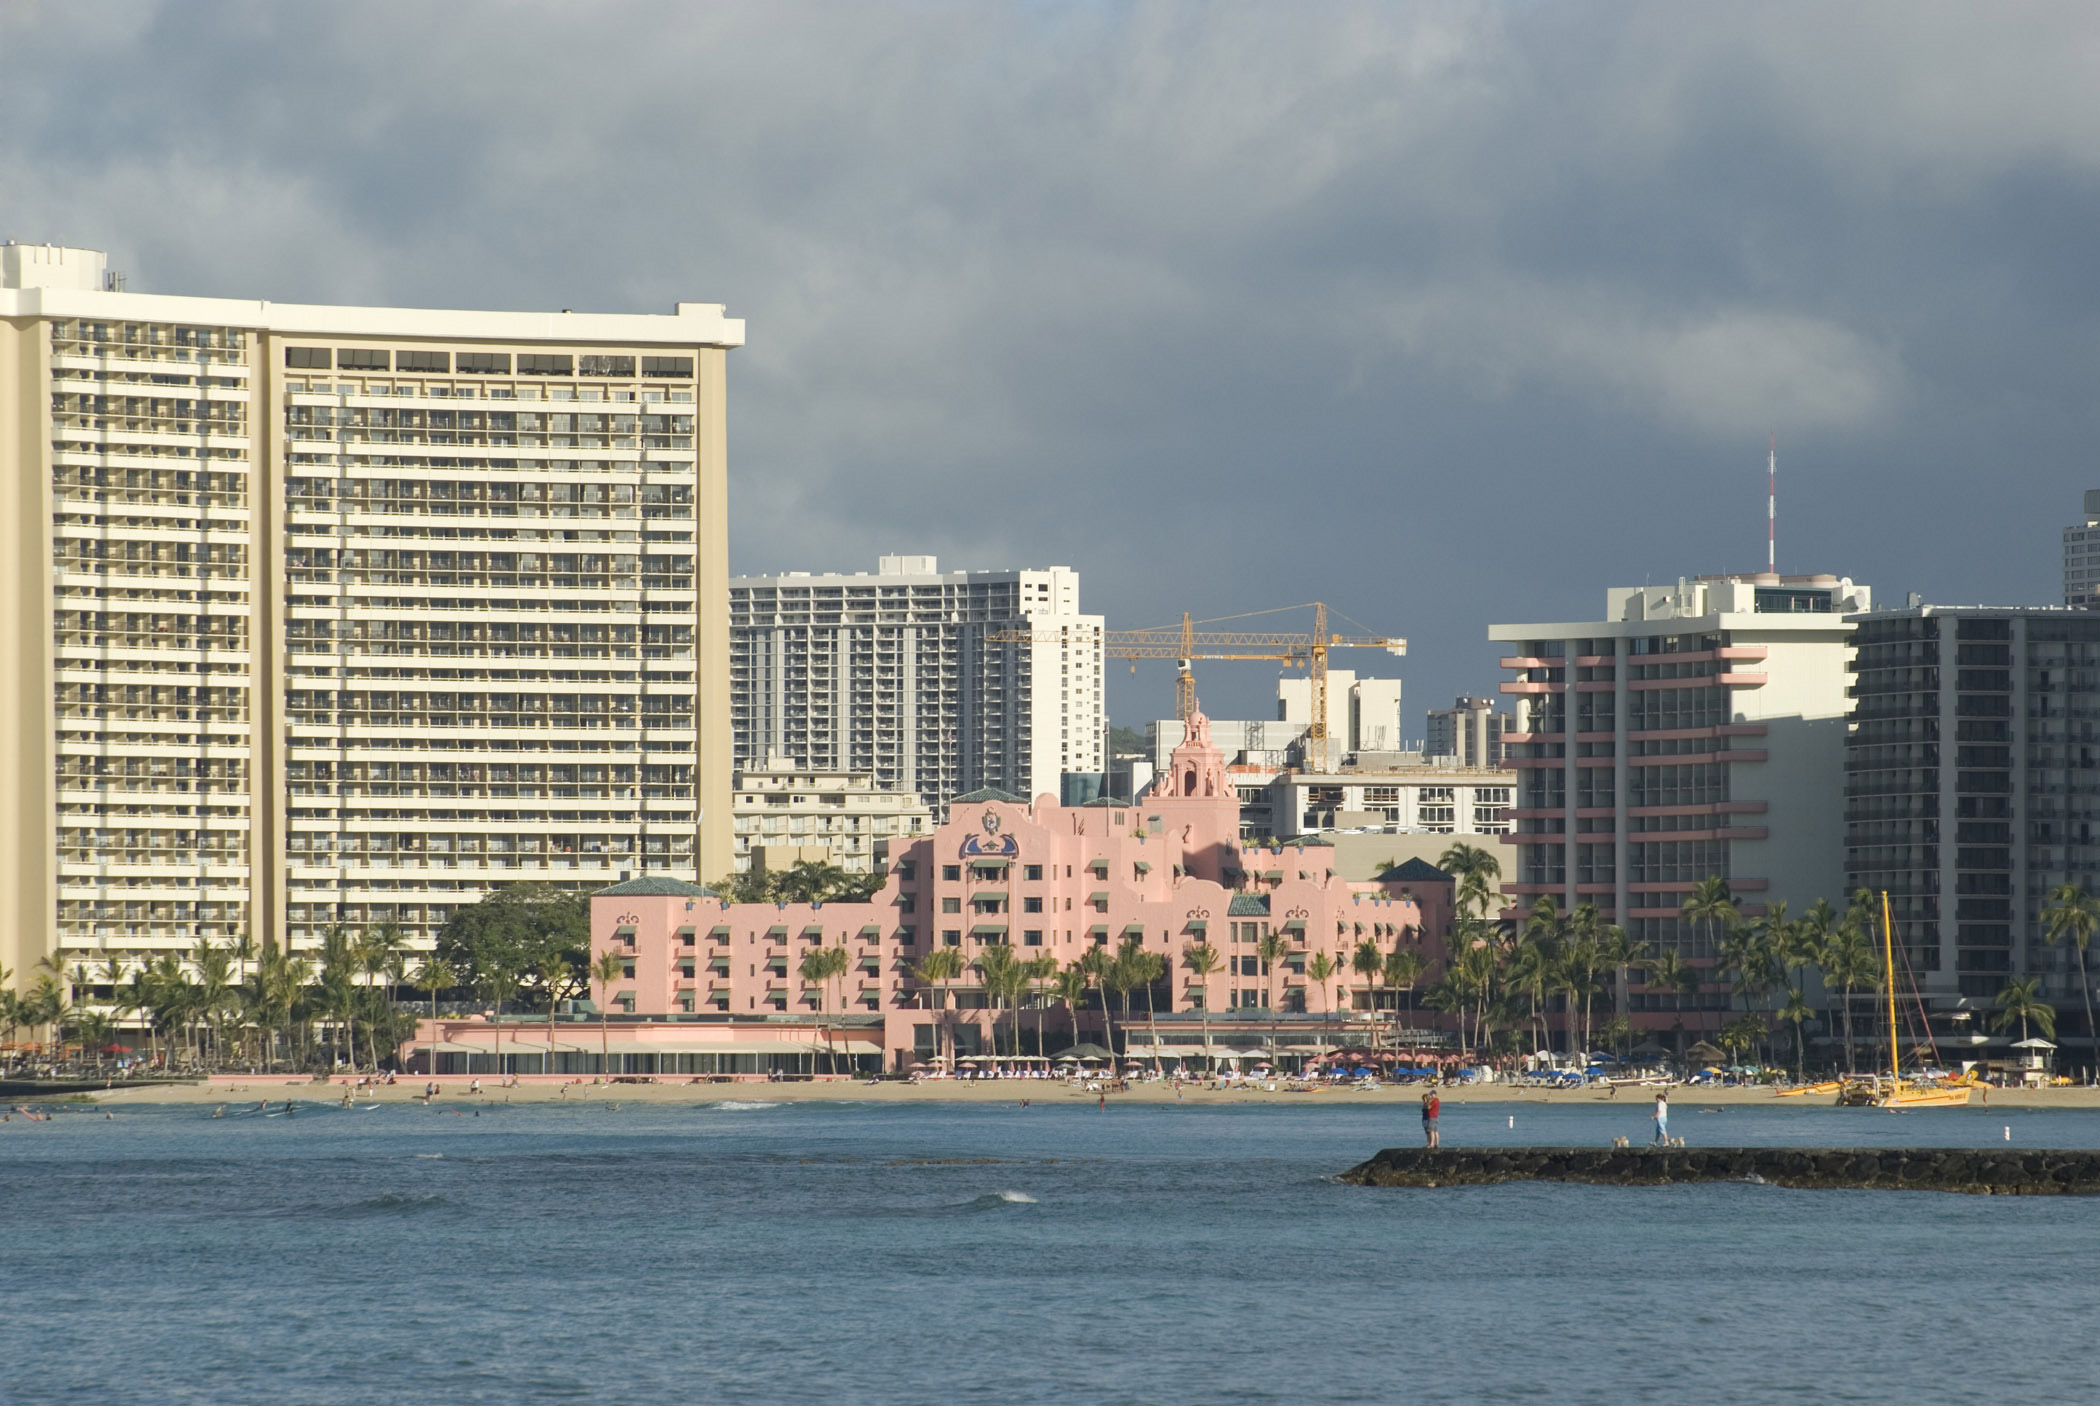 High Rise Architectural Resort Hotels and Business Buildings on Stormy Sky Background.